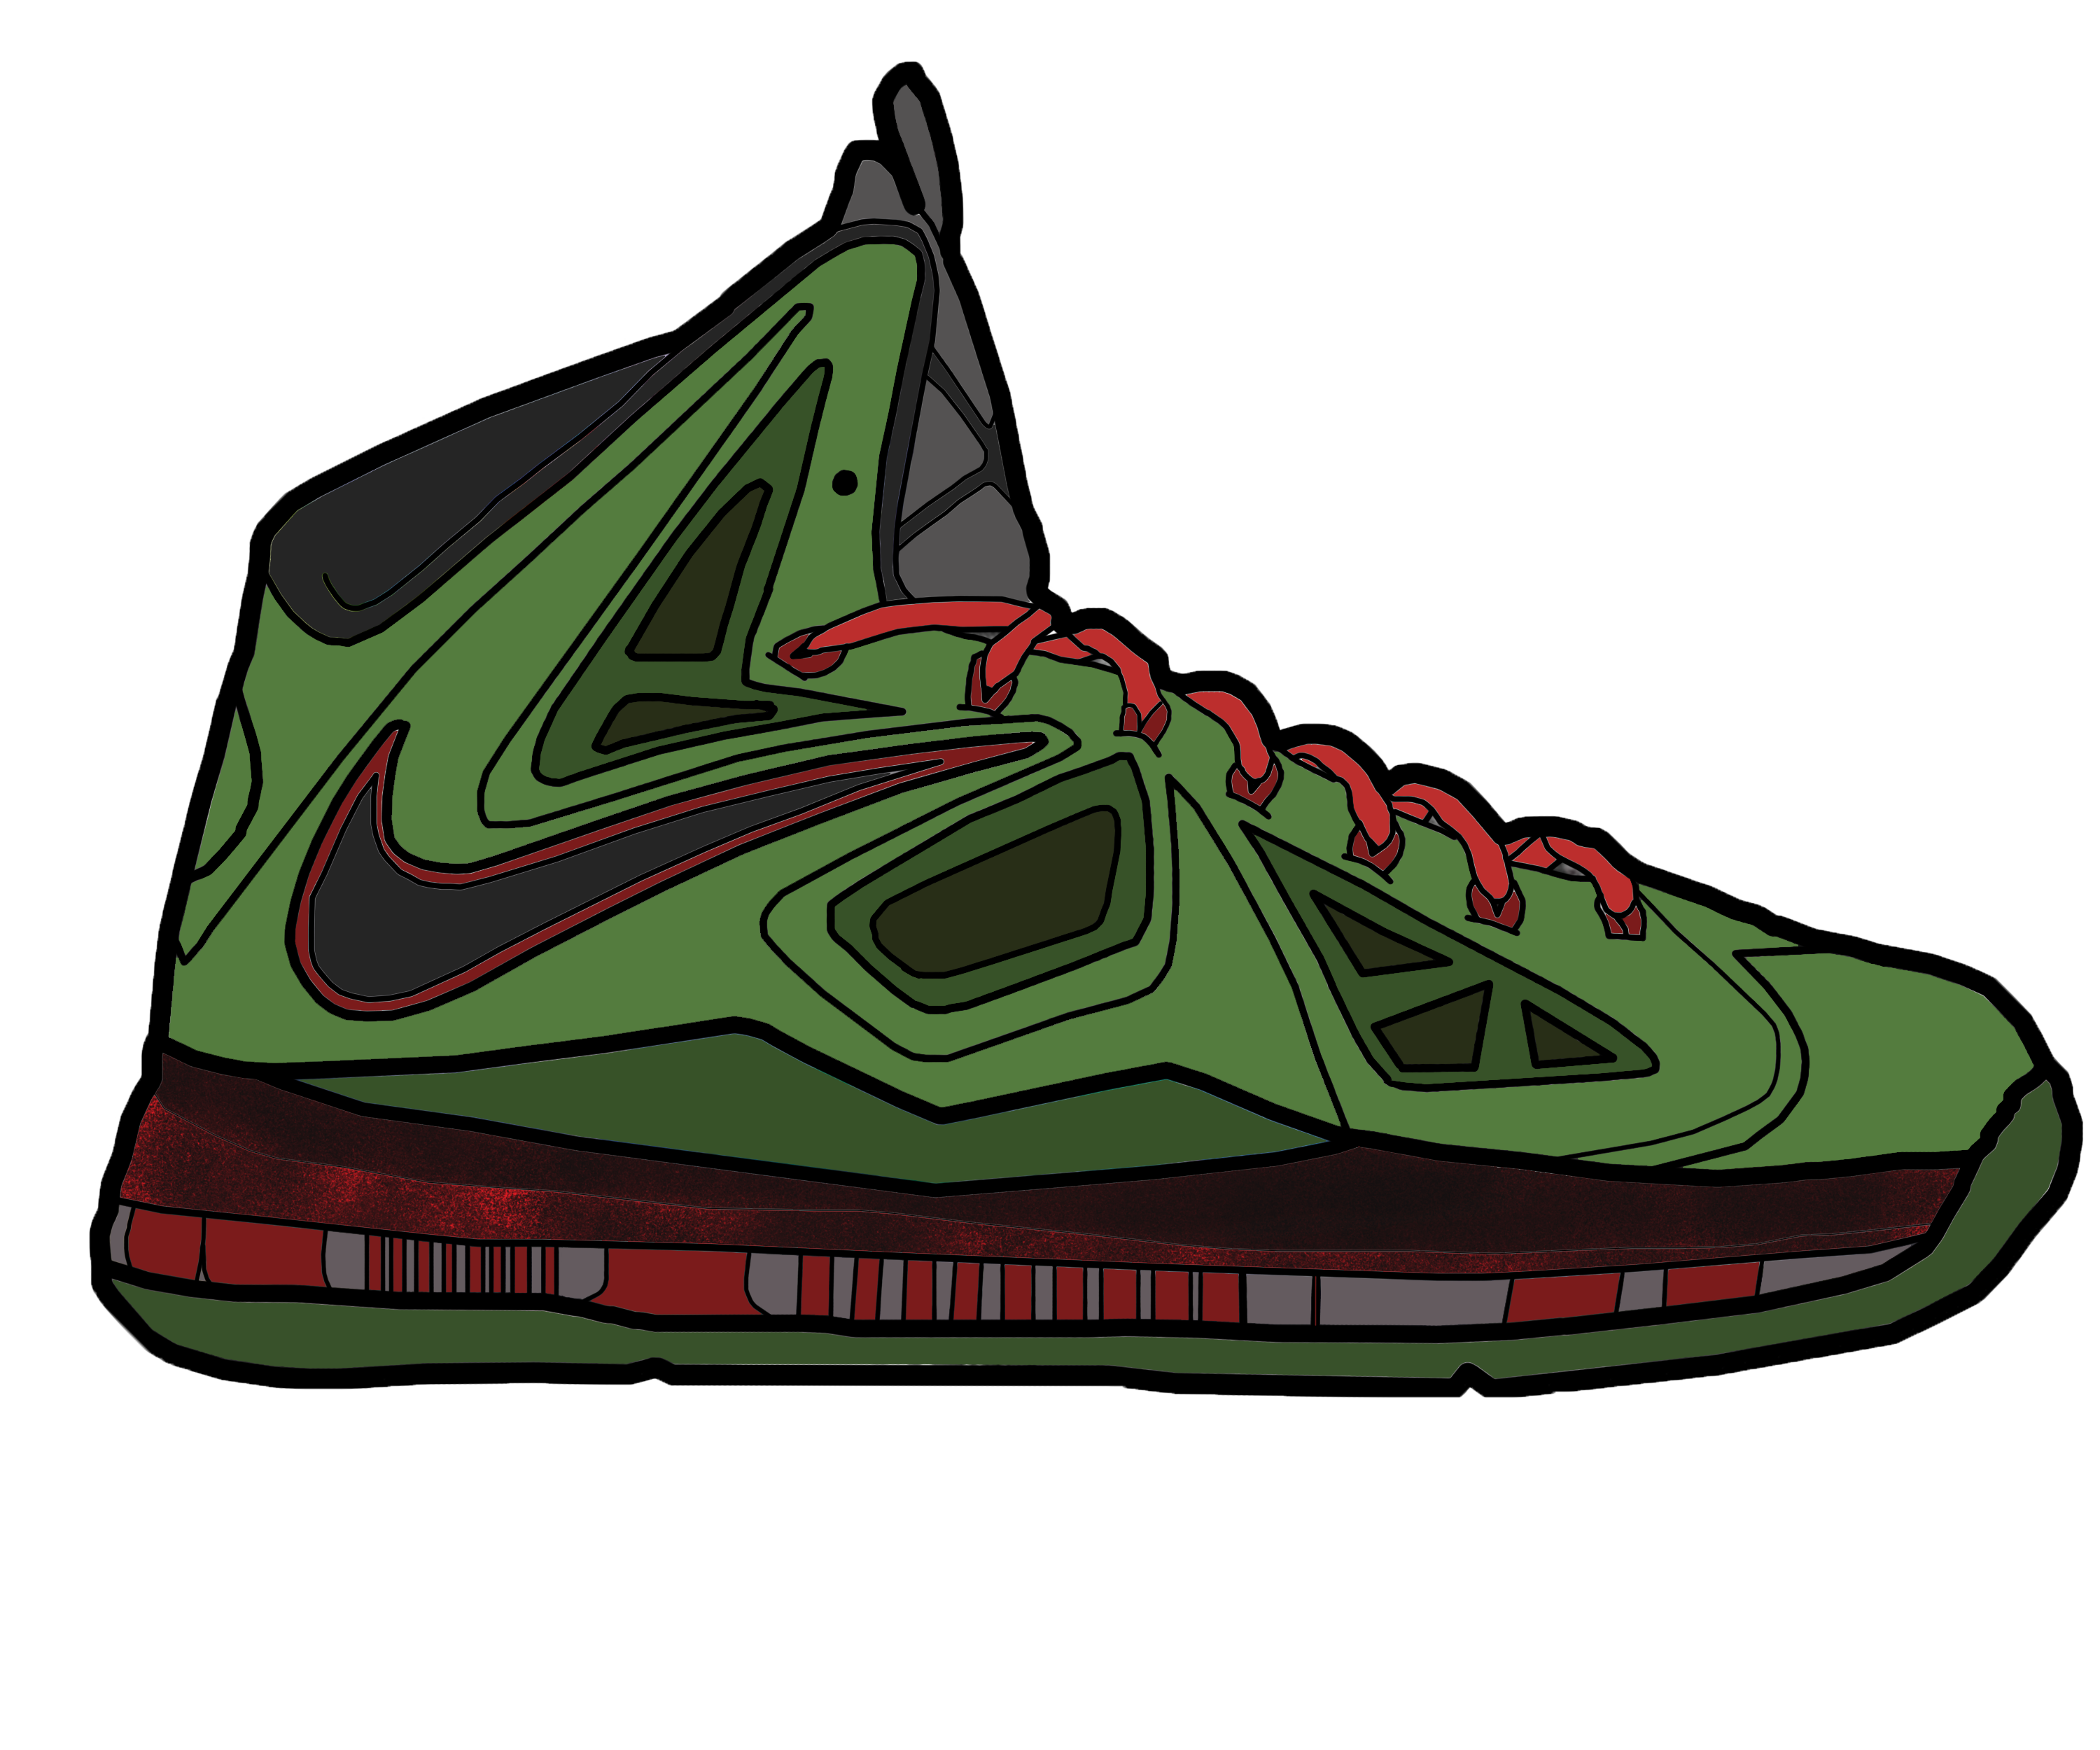 Nba basketball shoes clipart vector free library Lebron Shoes Drawing at GetDrawings.com | Free for personal use ... vector free library